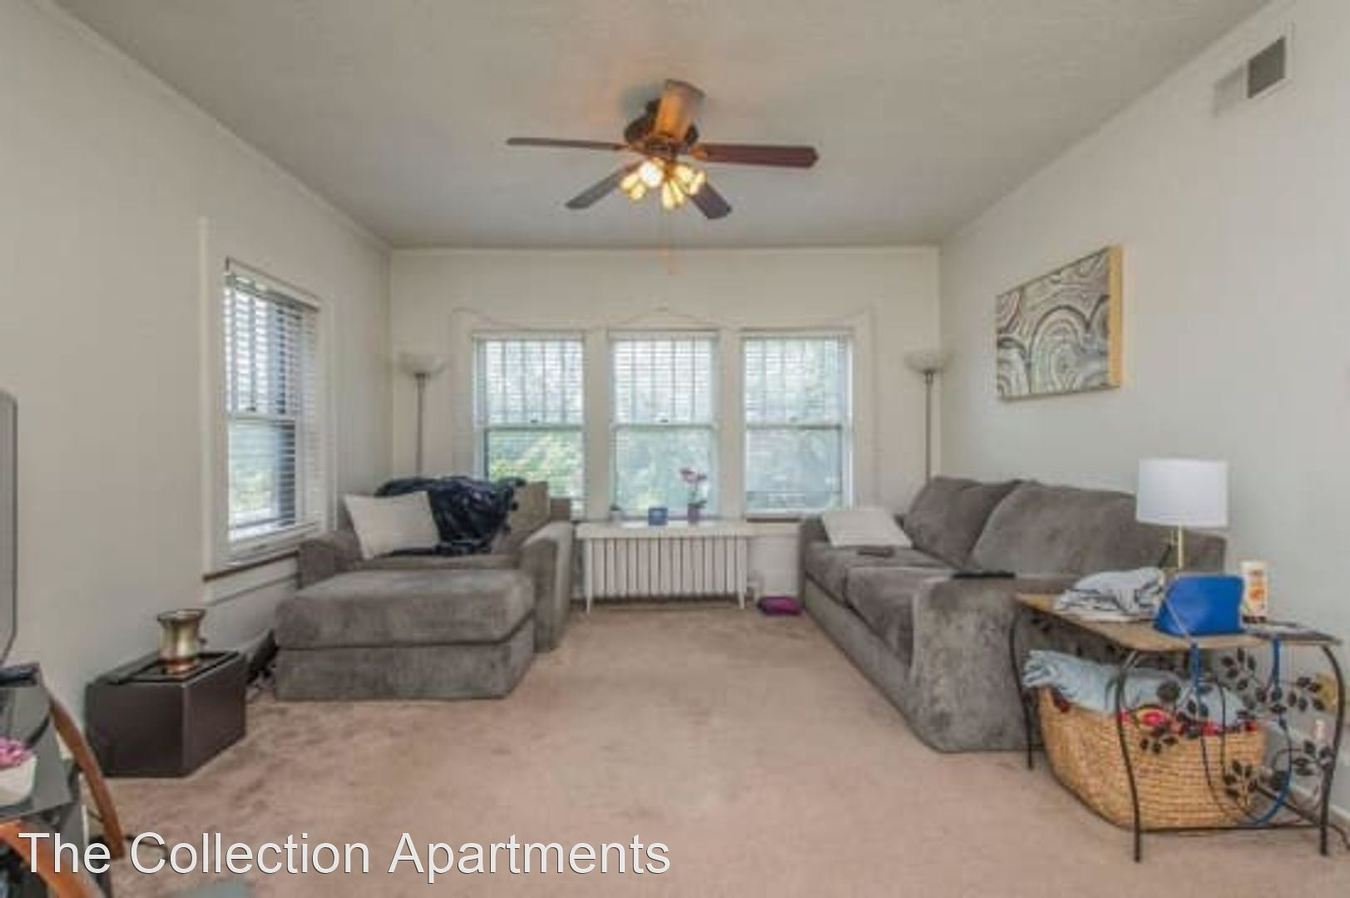 2 Bedrooms 1 Bathroom Apartment for rent at 3927 Ingersoll Ave in Des Moines, IA